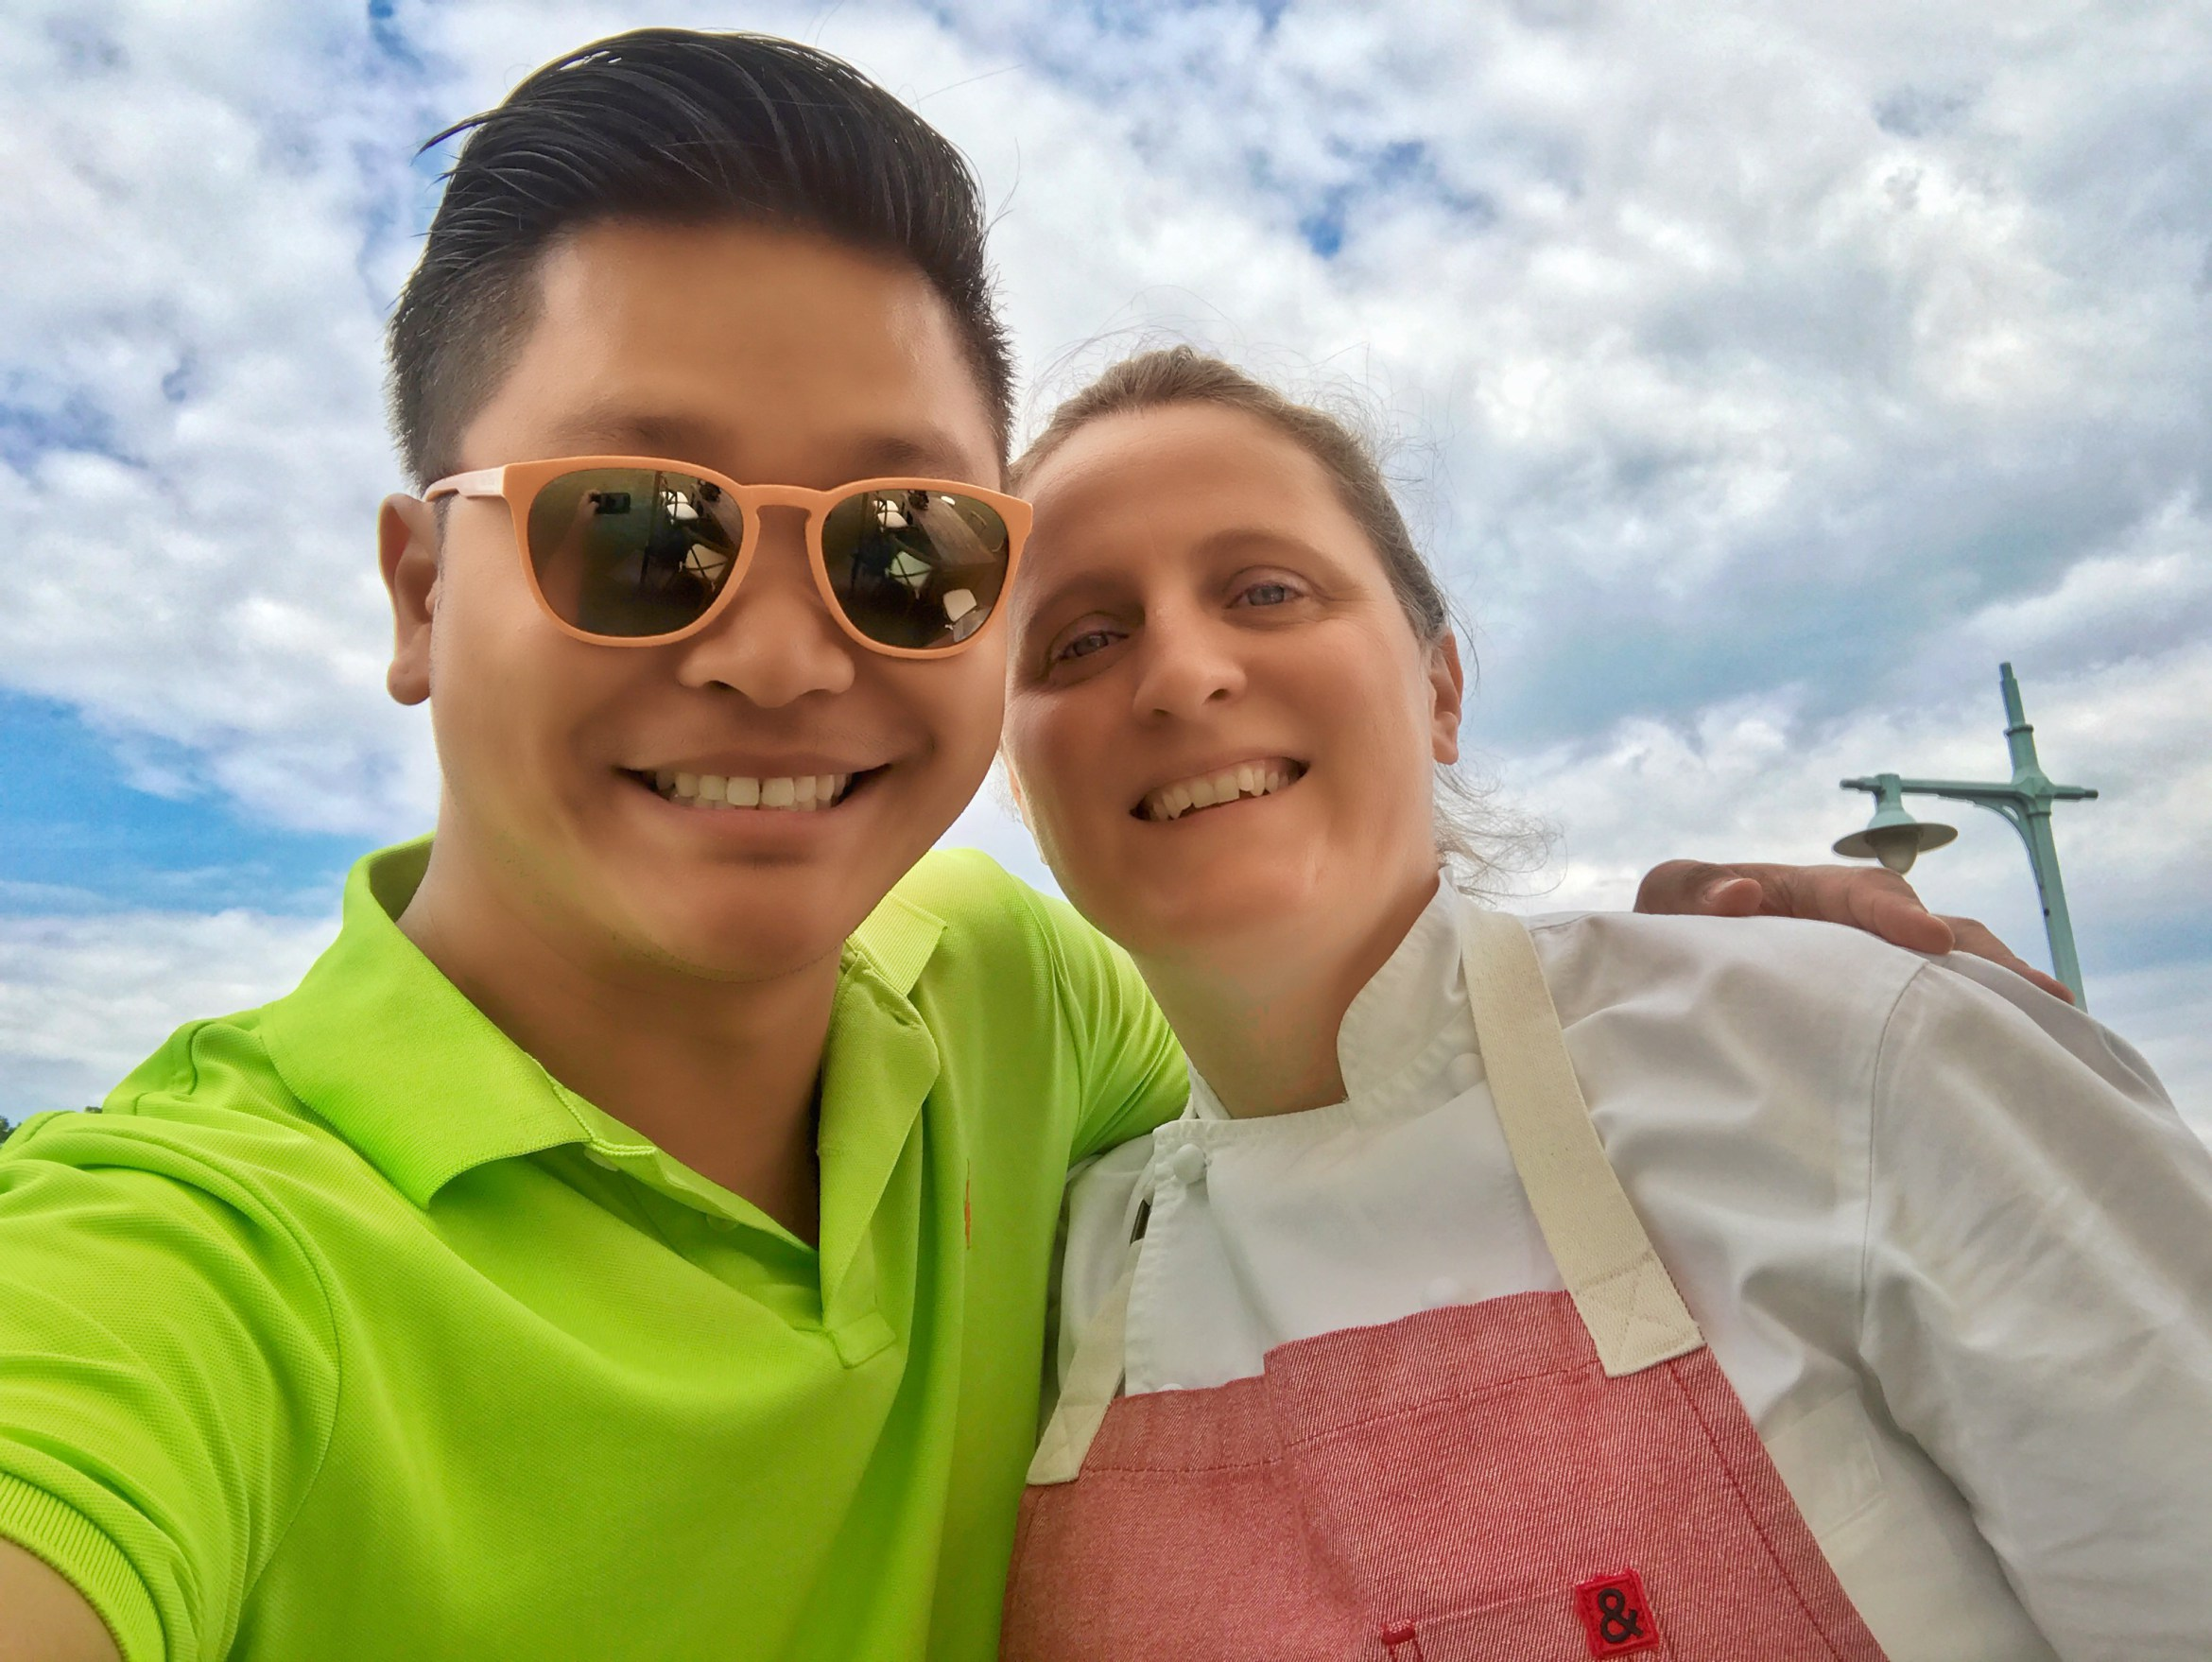 Mike's selfie with Chefs April Bloomfield